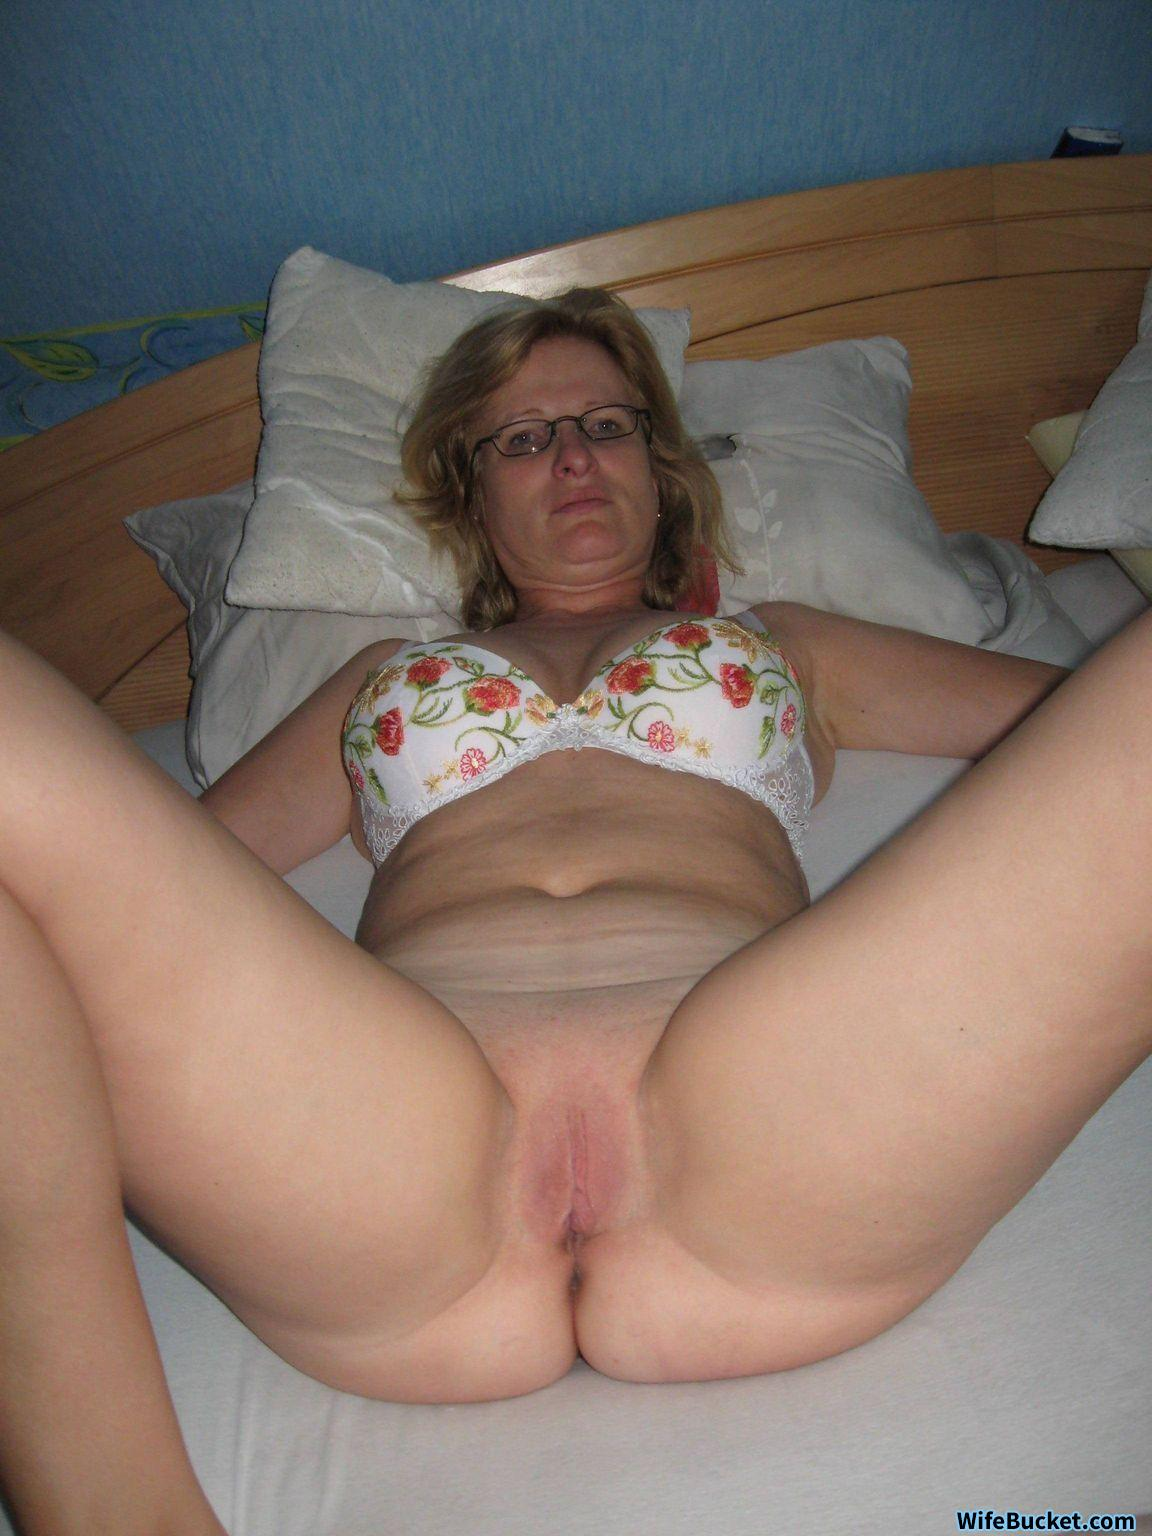 Seems Wife s sister nude something